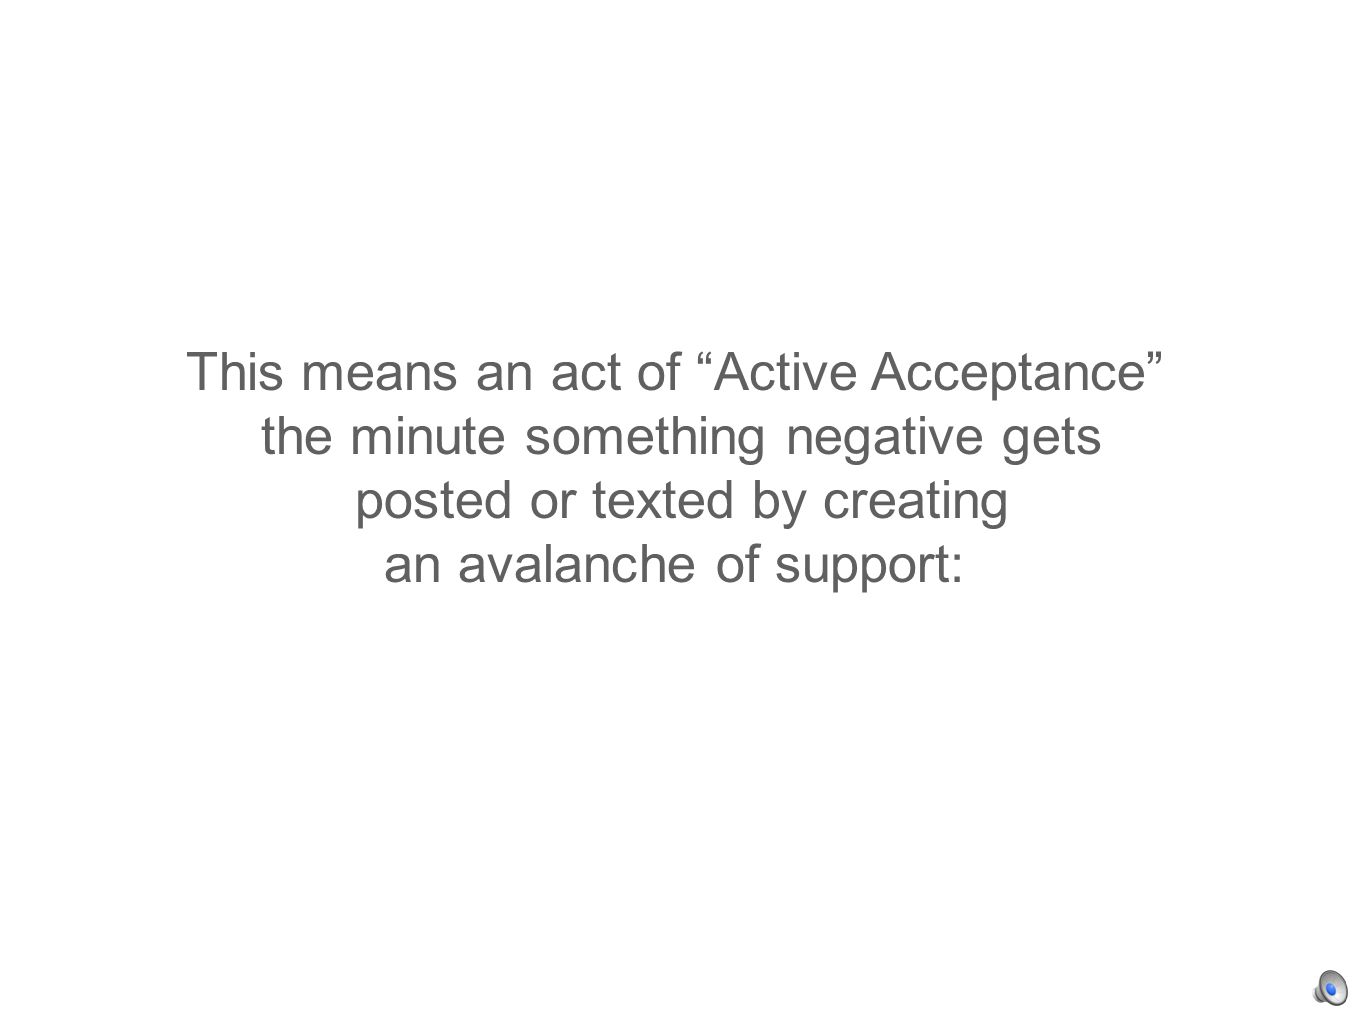 This means an act of Active Acceptance the minute something negative gets posted or texted by creating an avalanche of support: